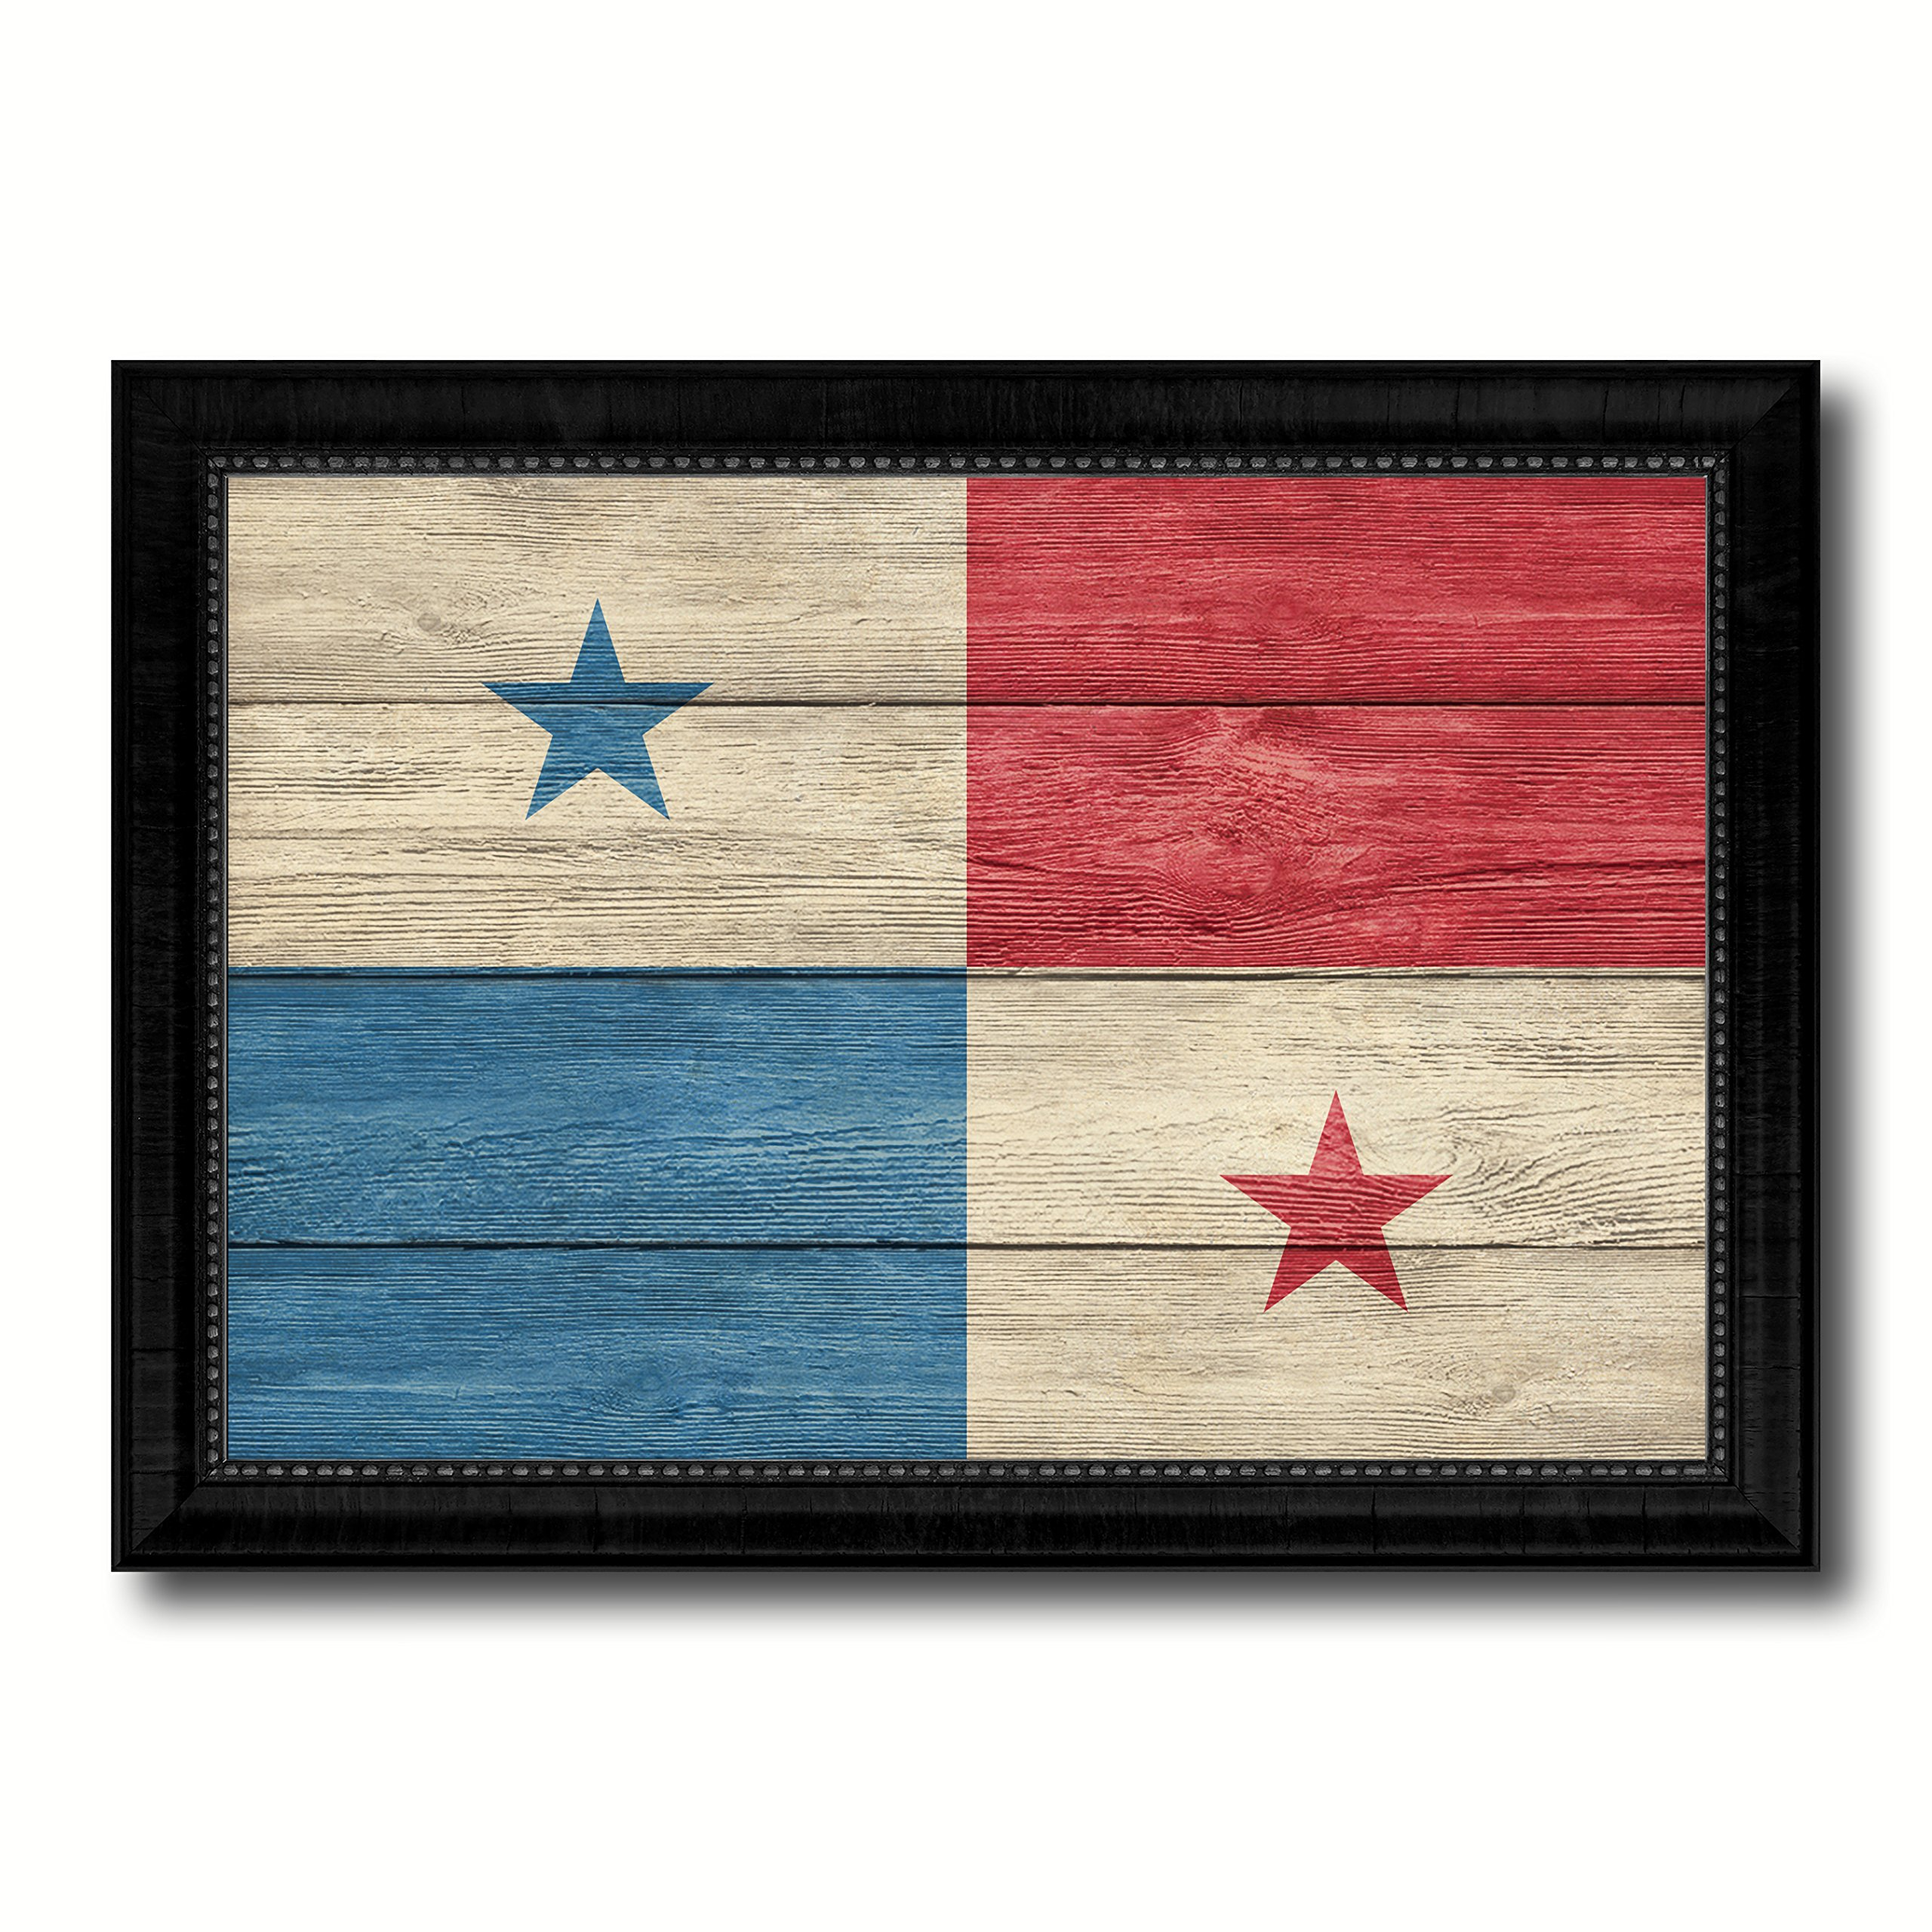 Panama Country Flag Texture Canvas Print, Wood Grain Black Picture Frame Gift Ideas Home Decor Wall Art Decoration